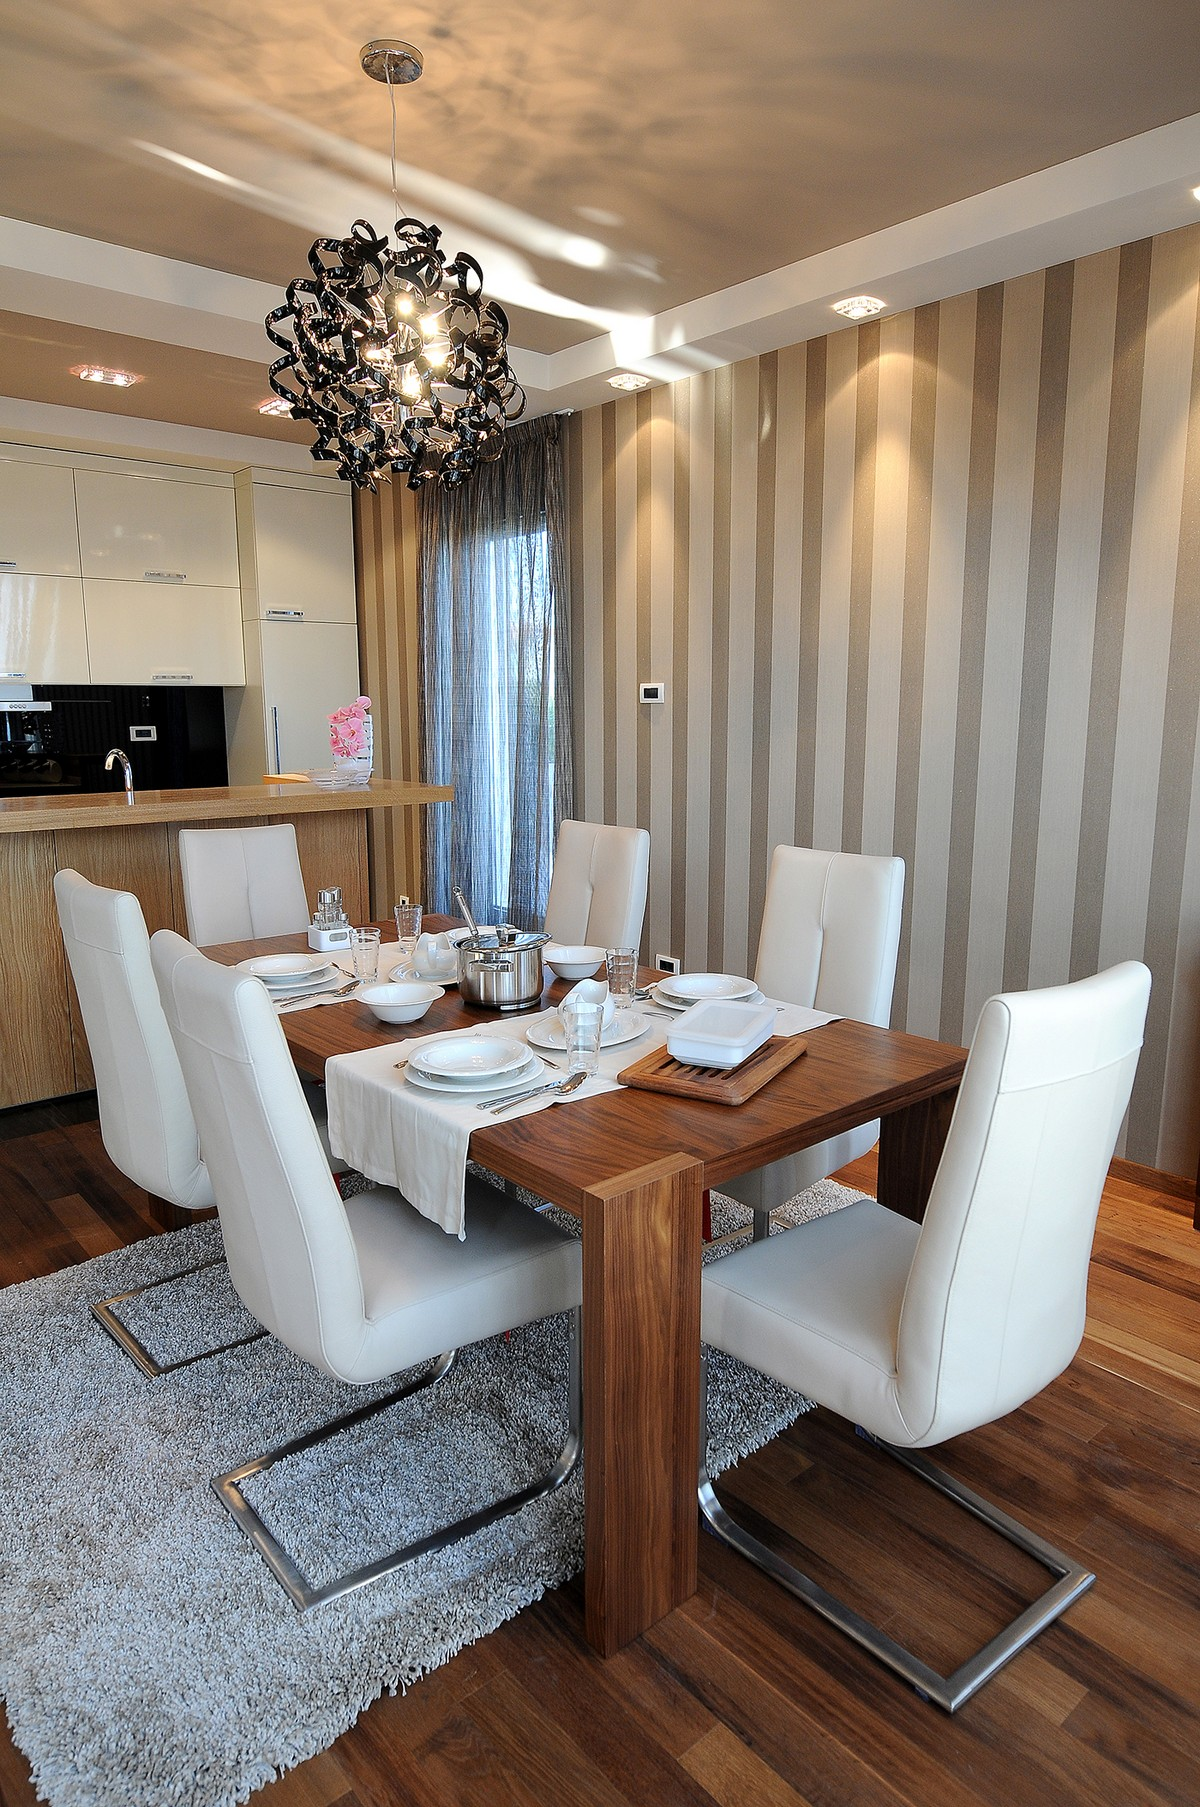 Luxurious Penthouse in Modern and Comfort Design: Formal Wooden Dining Table With 6 Modern White Chair Unique Pendant Lamp